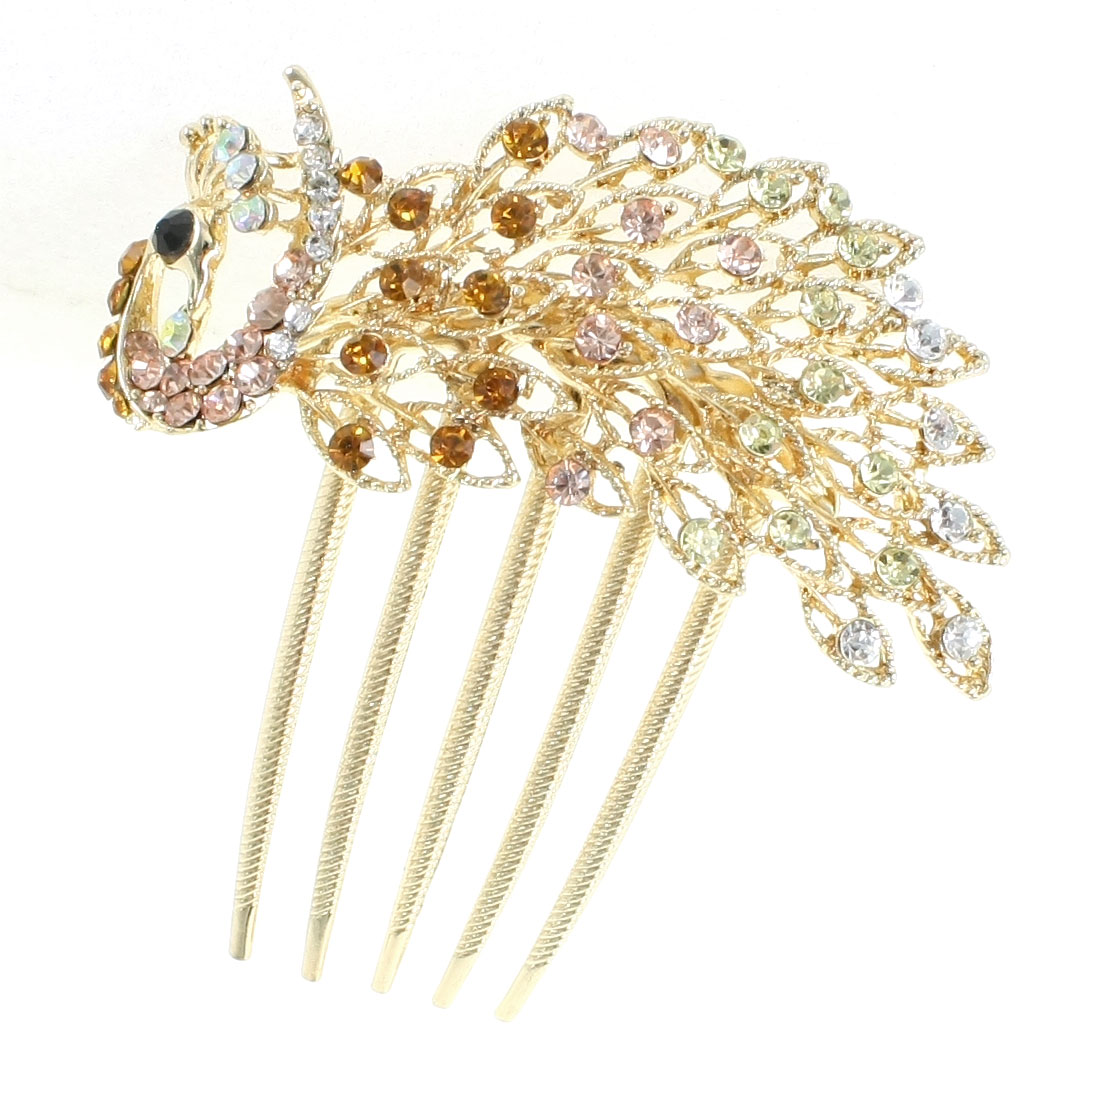 Colorful Rhinestone Detail Metal Prong Peacock Hair Comb Clip Claw for Lady